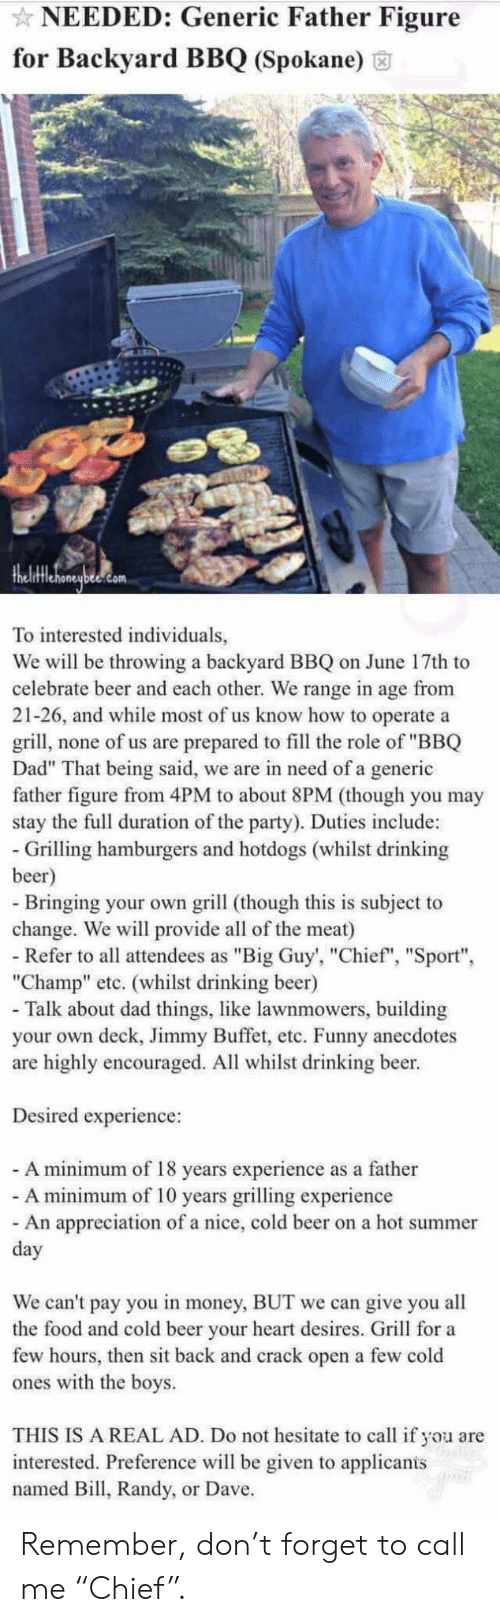 "Chief: NEEDED: Generic Father Figure  for Backyard BBQ (Spokane)  To interested individuals,  We will be throwing a backyard BBQ on June 17th to  celebrate beer and each other. We range in age from  21-26, and while most of us know how to operate a  grill, none of us are prepared to fill the role of ""BBQ  Dad"" That being said, we are in need of a generic  father figure from 4PM to about 8PM (though you may  stay the full duration of the party). Duties include:  - Grilling hamburgers and hotdogs (whilst drinking  beer)  - Bringing your own grill (though this is subject to  change. We will provide all of the meat)  - Refer to all attendees as ""Big Guy', ""Chief"", ""Sport""  ""Champ"" etc. (whilst drinking beer)  - Talk about dad things, like lawnmowers, building  your own deck, Jimmy Buffet, etc. Funny anecdotes  are highly encouraged. All whilst drinking beer.  Desired experience:  - A minimum of 18 years experience as a father  - A minimum of 10 years grilling experience  - An appreciation of a nice, cold beer on a hot summer  day  We can't pay you in money, BUT we can give you all  the food and cold beer your heart desires. Grill for a  few hours, then sit back and crack open a few cold  ones with the boys.  THIS IS A REAL AD. Do not hesitate to call if you are  interested. Preference will be given to applicanis  named Bill, Randy, or Dave. Remember, don't forget to call me ""Chief""."